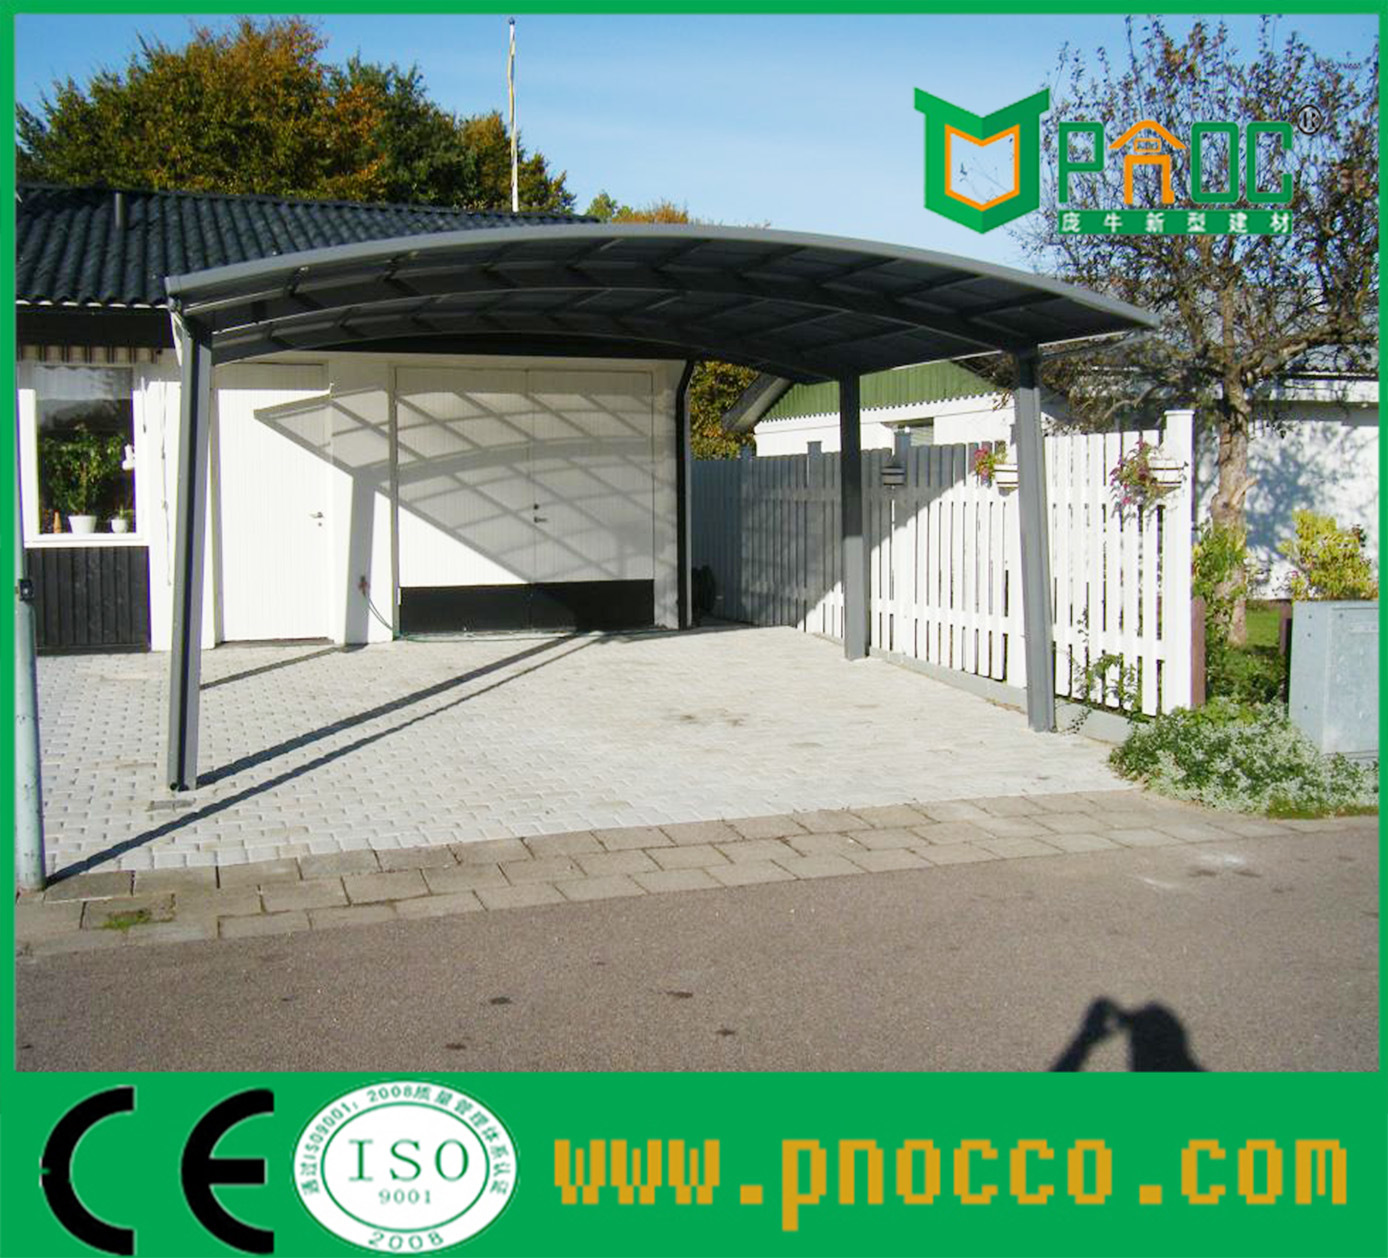 garage oak heavy pillar flat for yard unfinished stone or one green roof freestanding people space wood paving dangerous shelter sheds metal blogs white car grass carport regular how solid can be shed and details flooring the